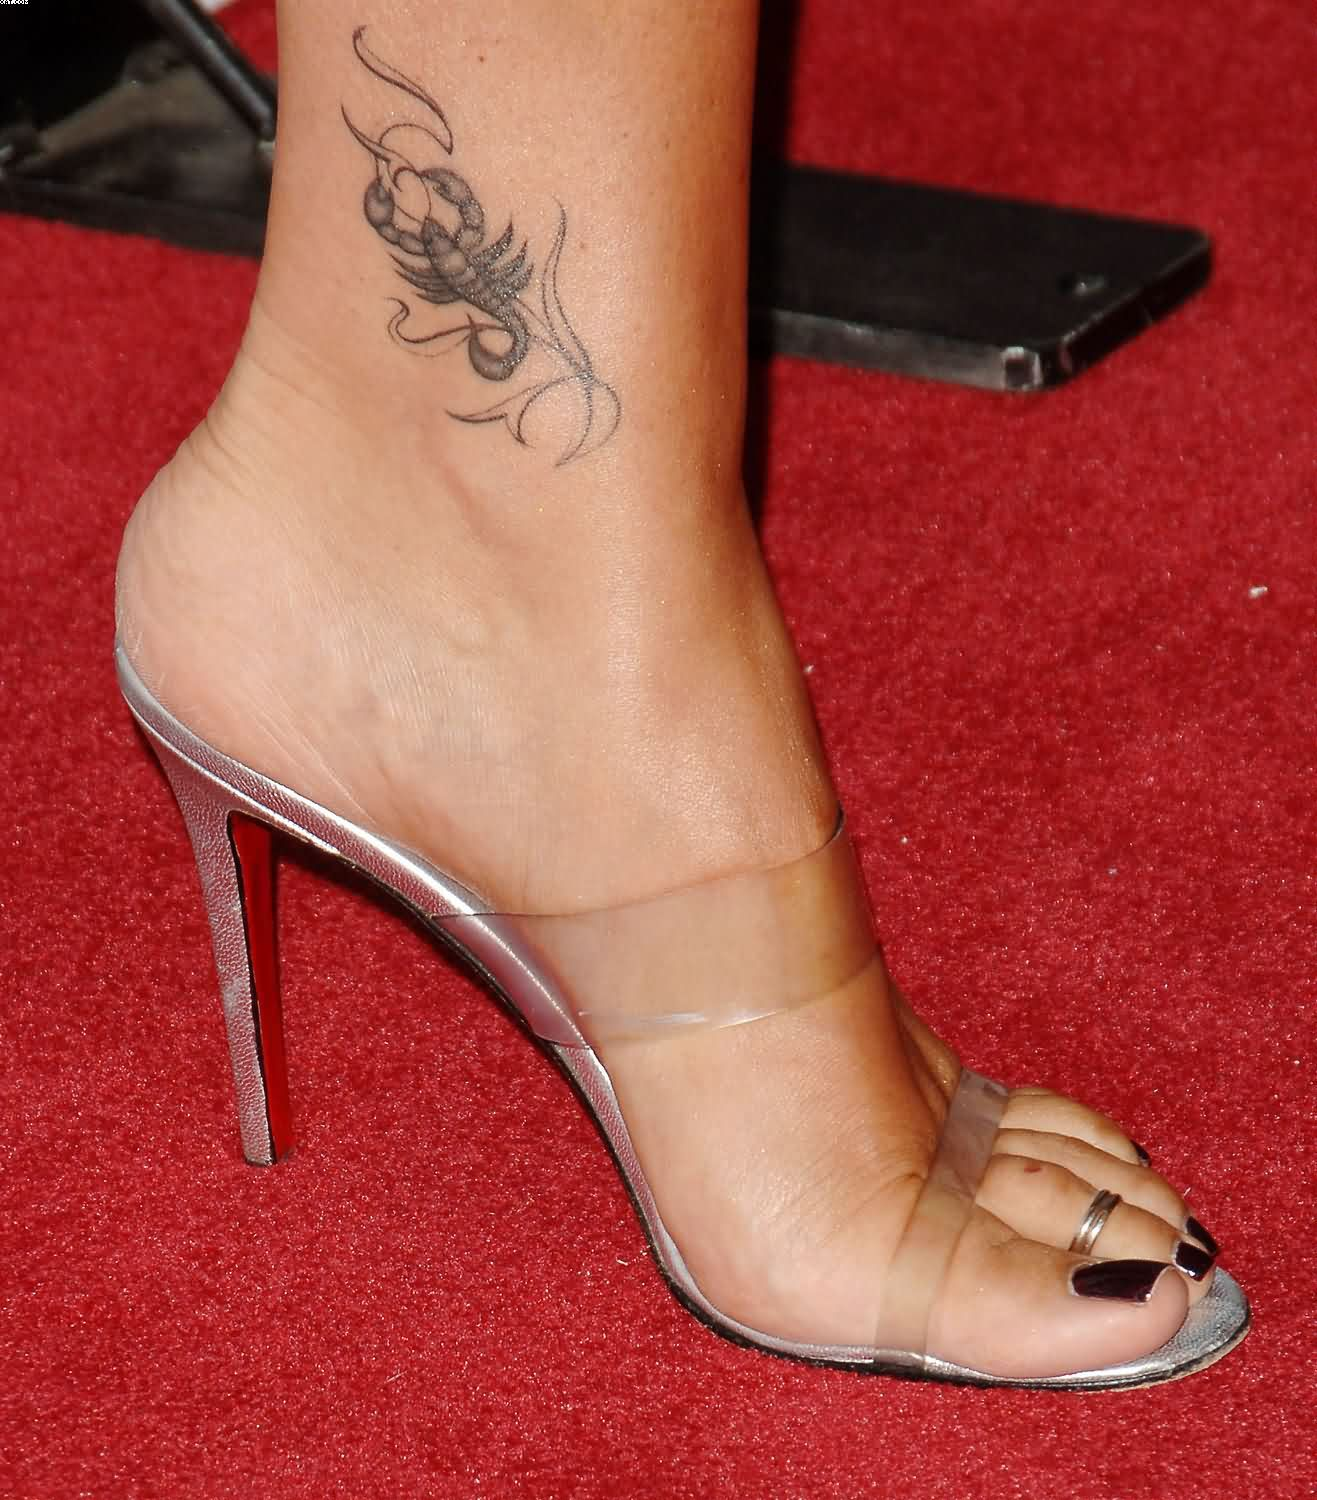 Scorpion Ankle Tattoo For Women